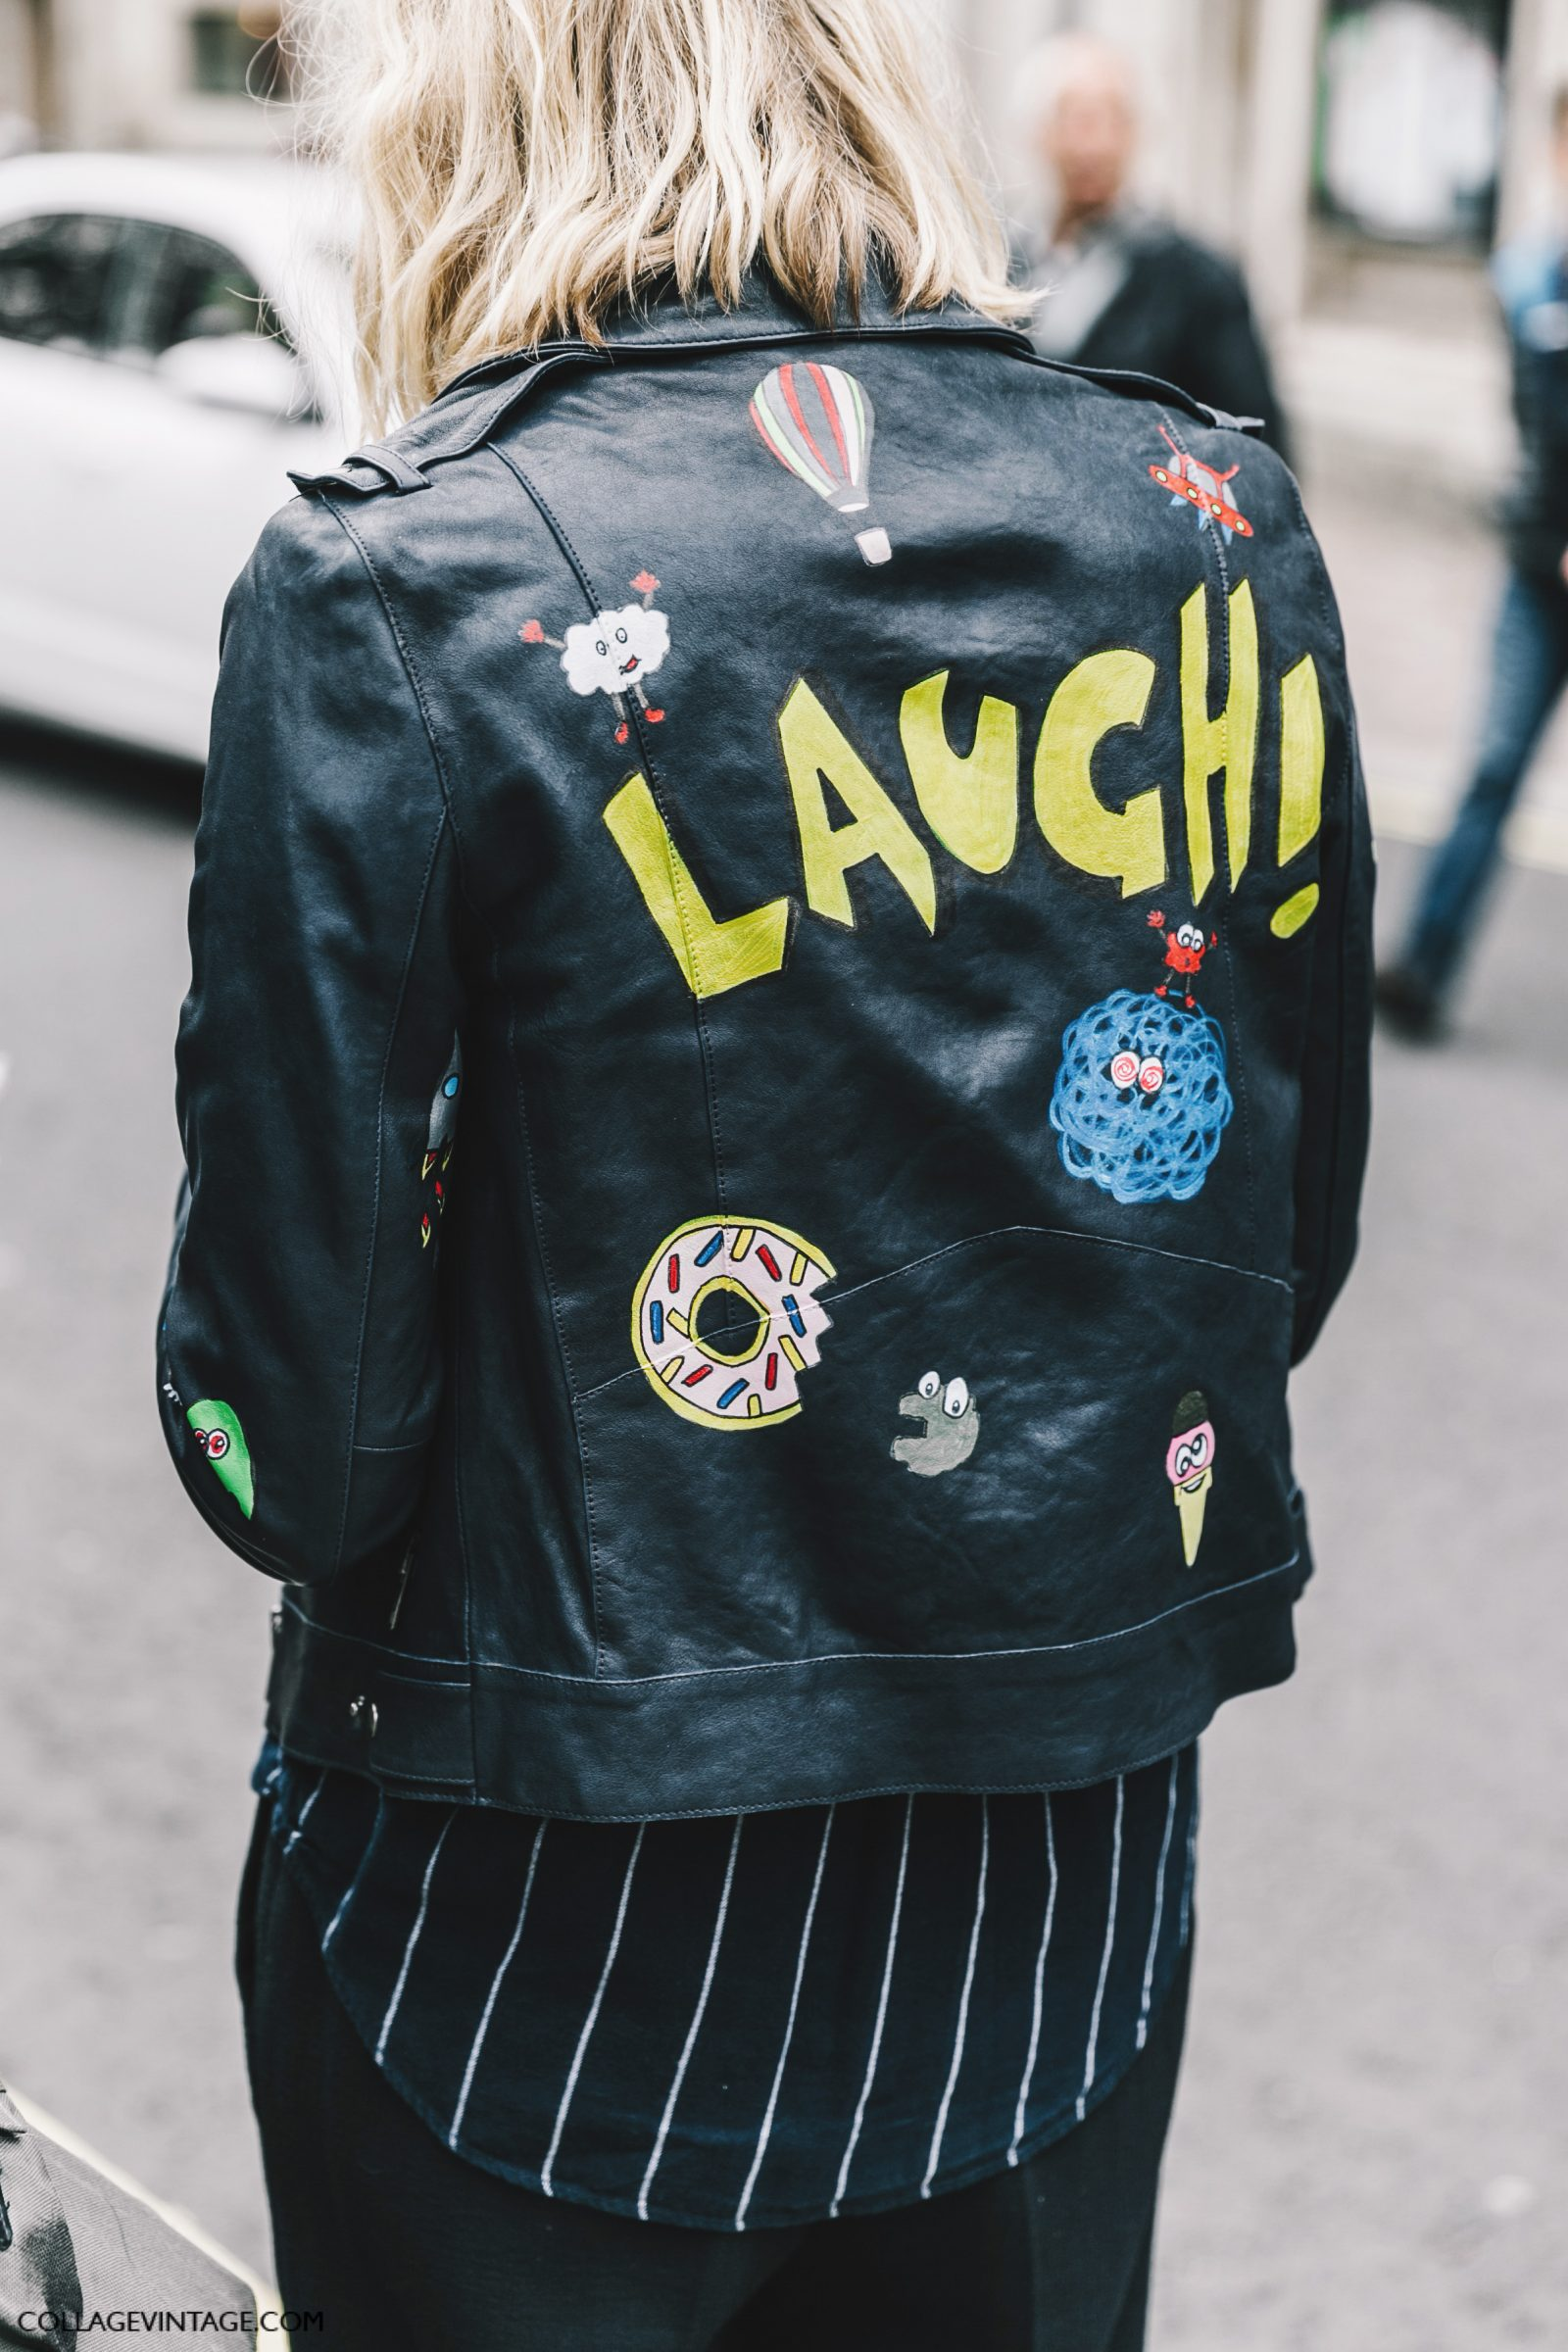 lfw-london_fashion_week_ss17-street_style-outfits-collage_vintage-vintage-topshop_unique-anya-mulberry-preen-112